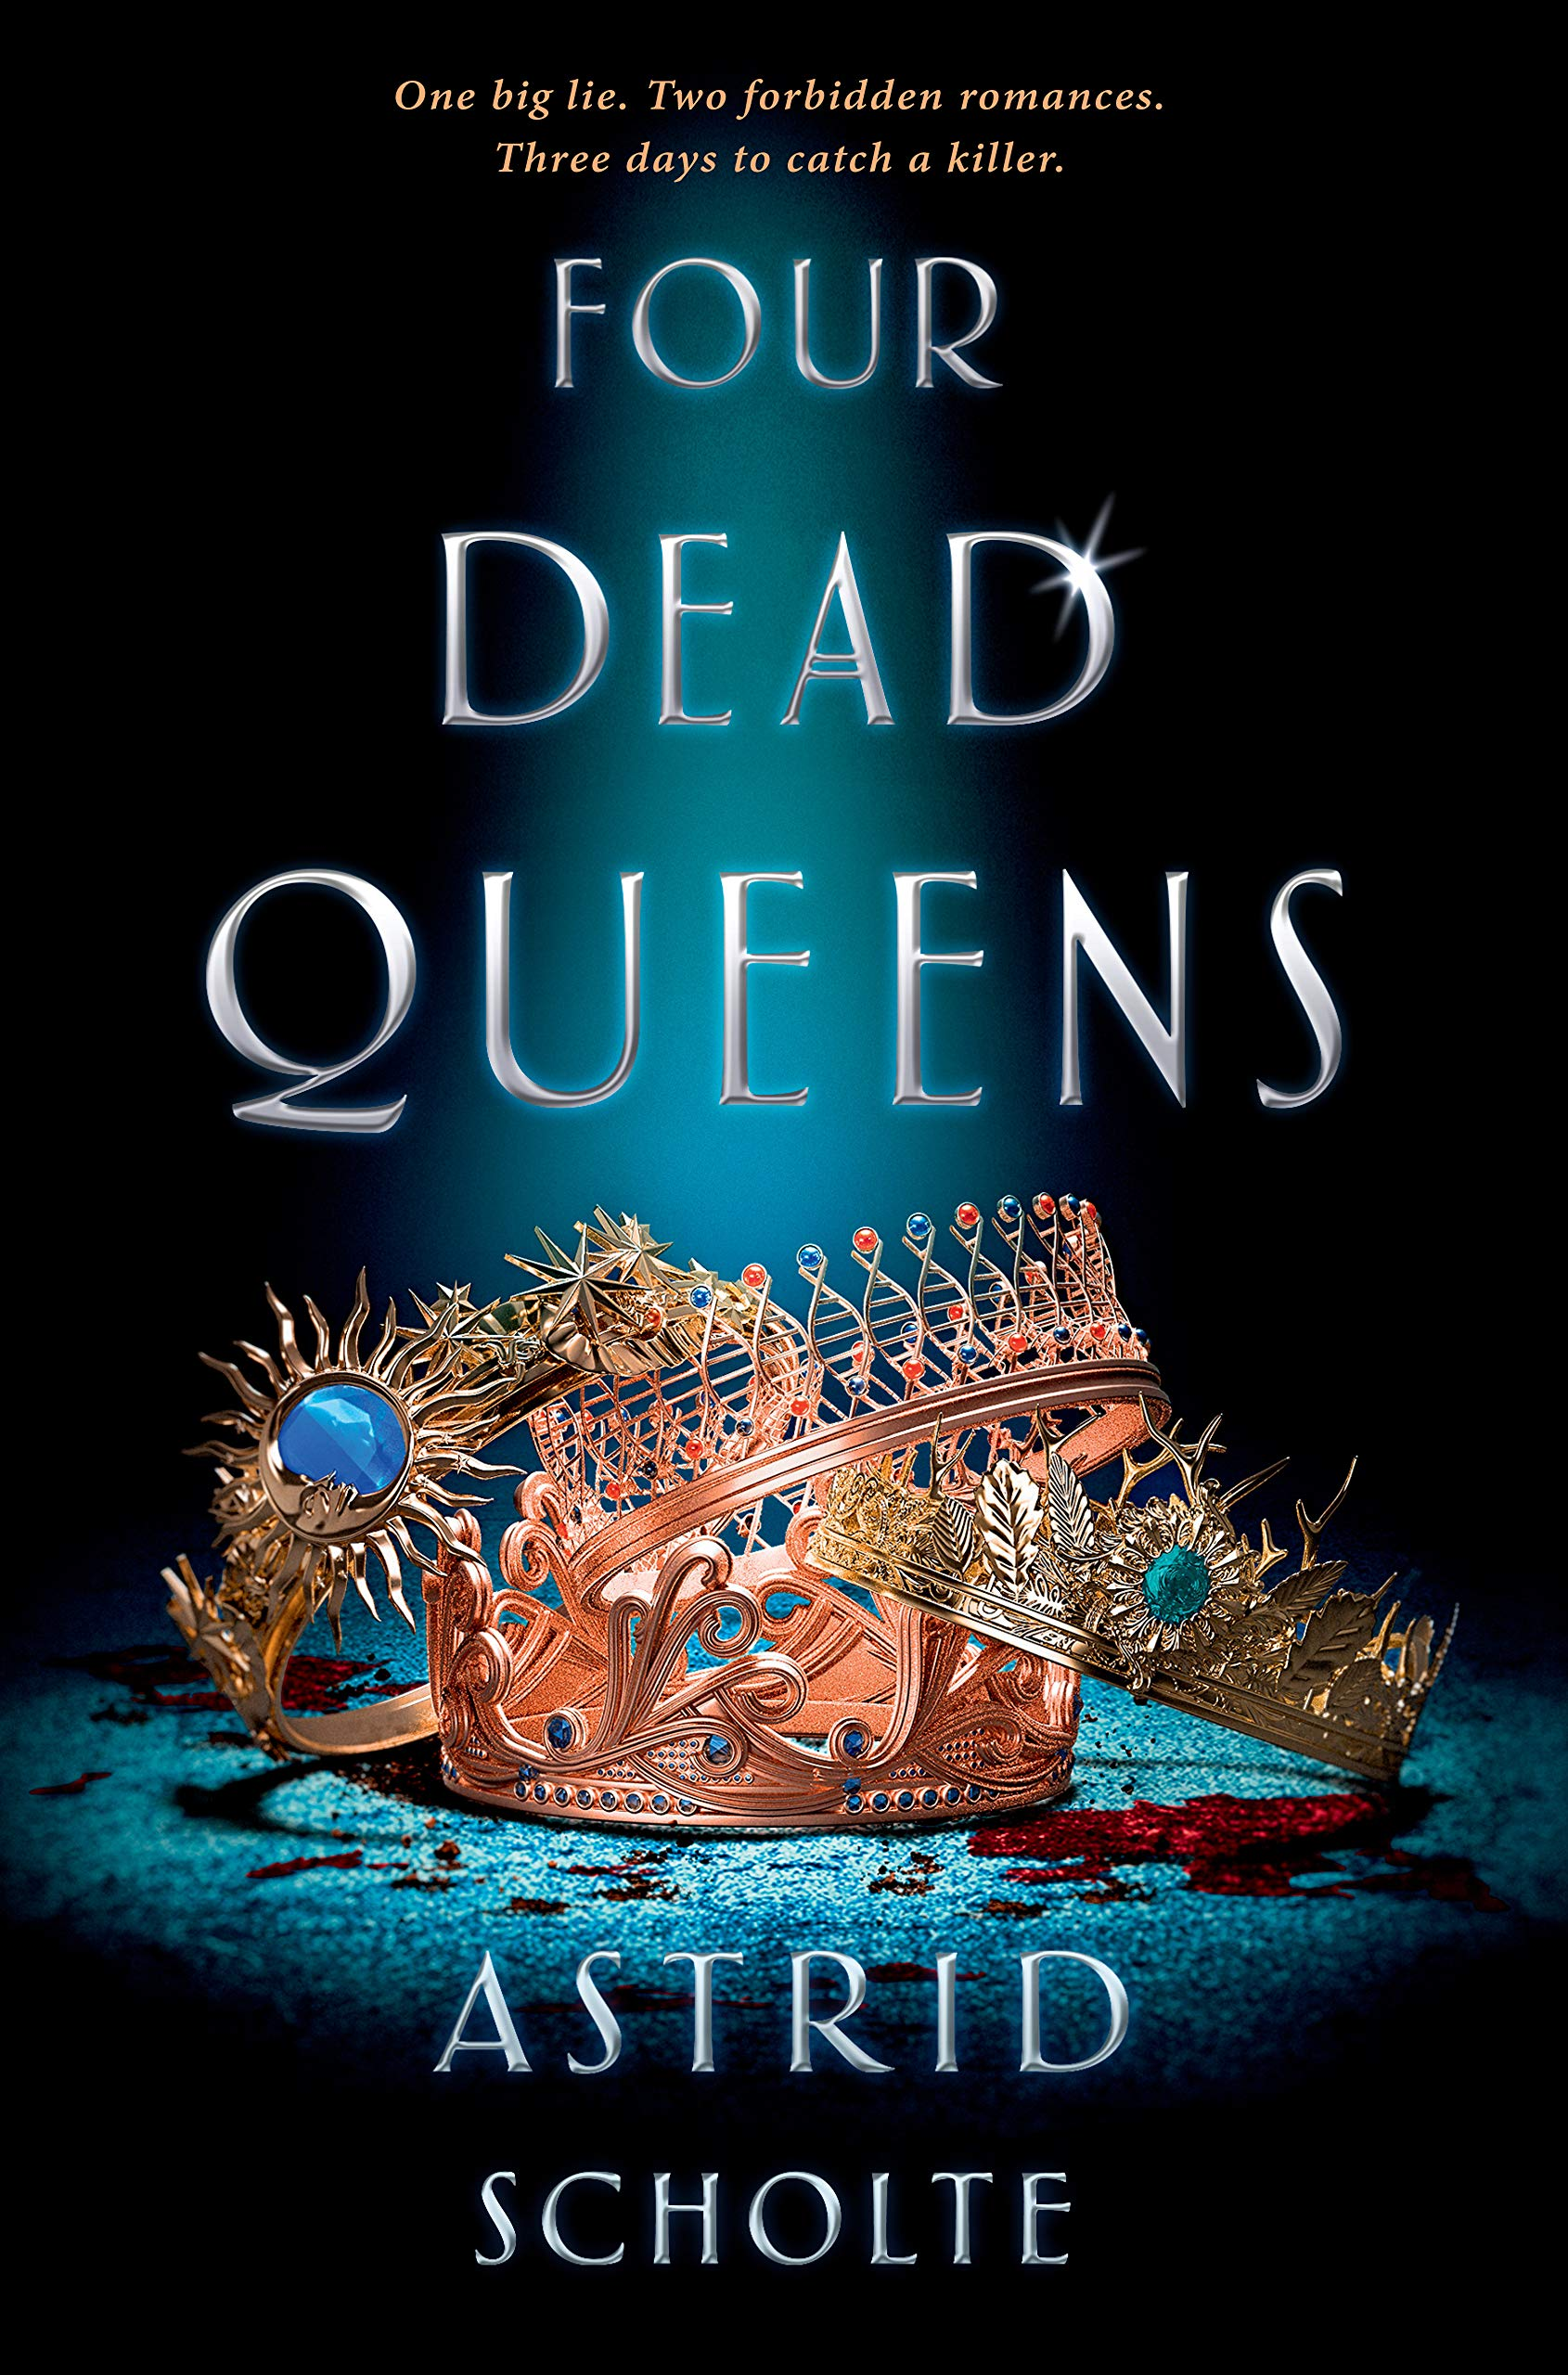 Amazon.com: Four Dead Queens (9780525513926): Scholte, Astrid: Books